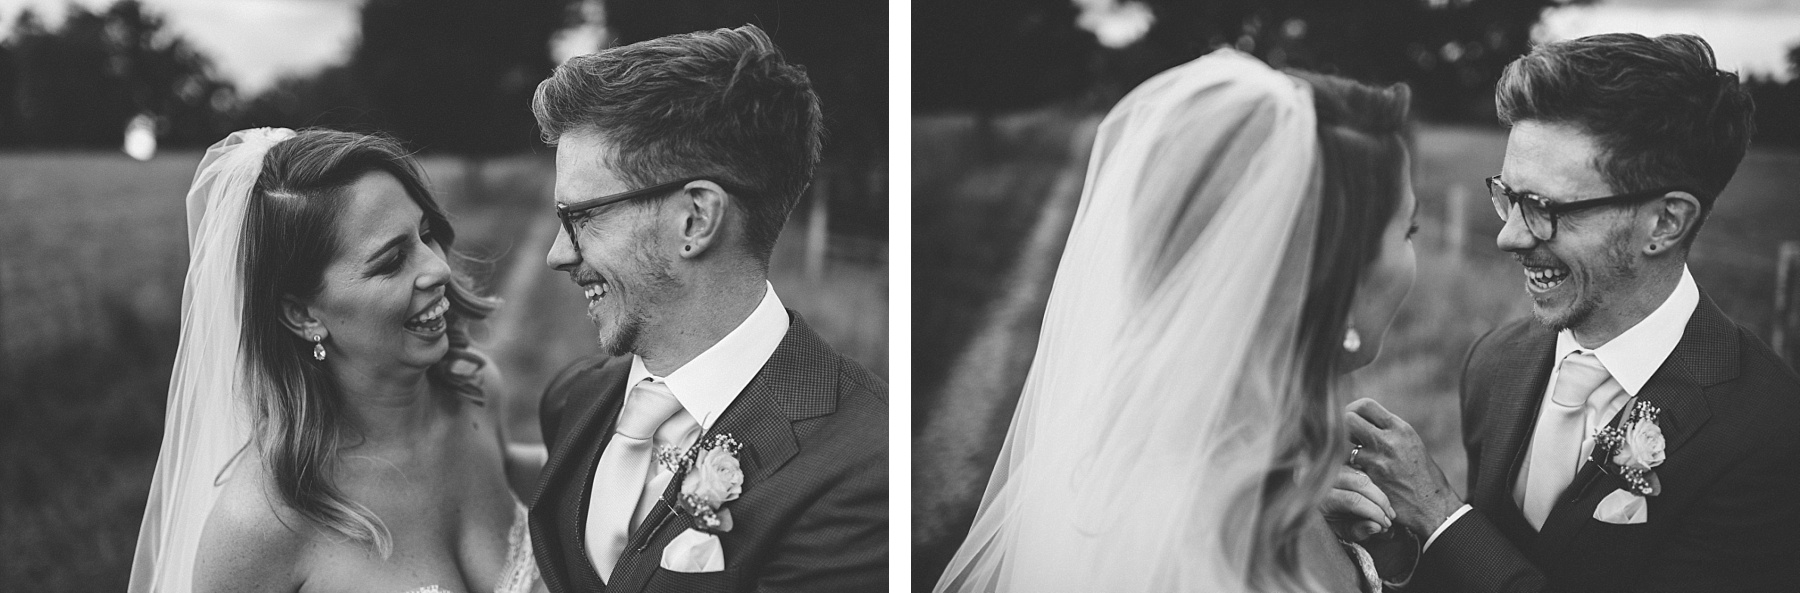 The Elvetham wedding